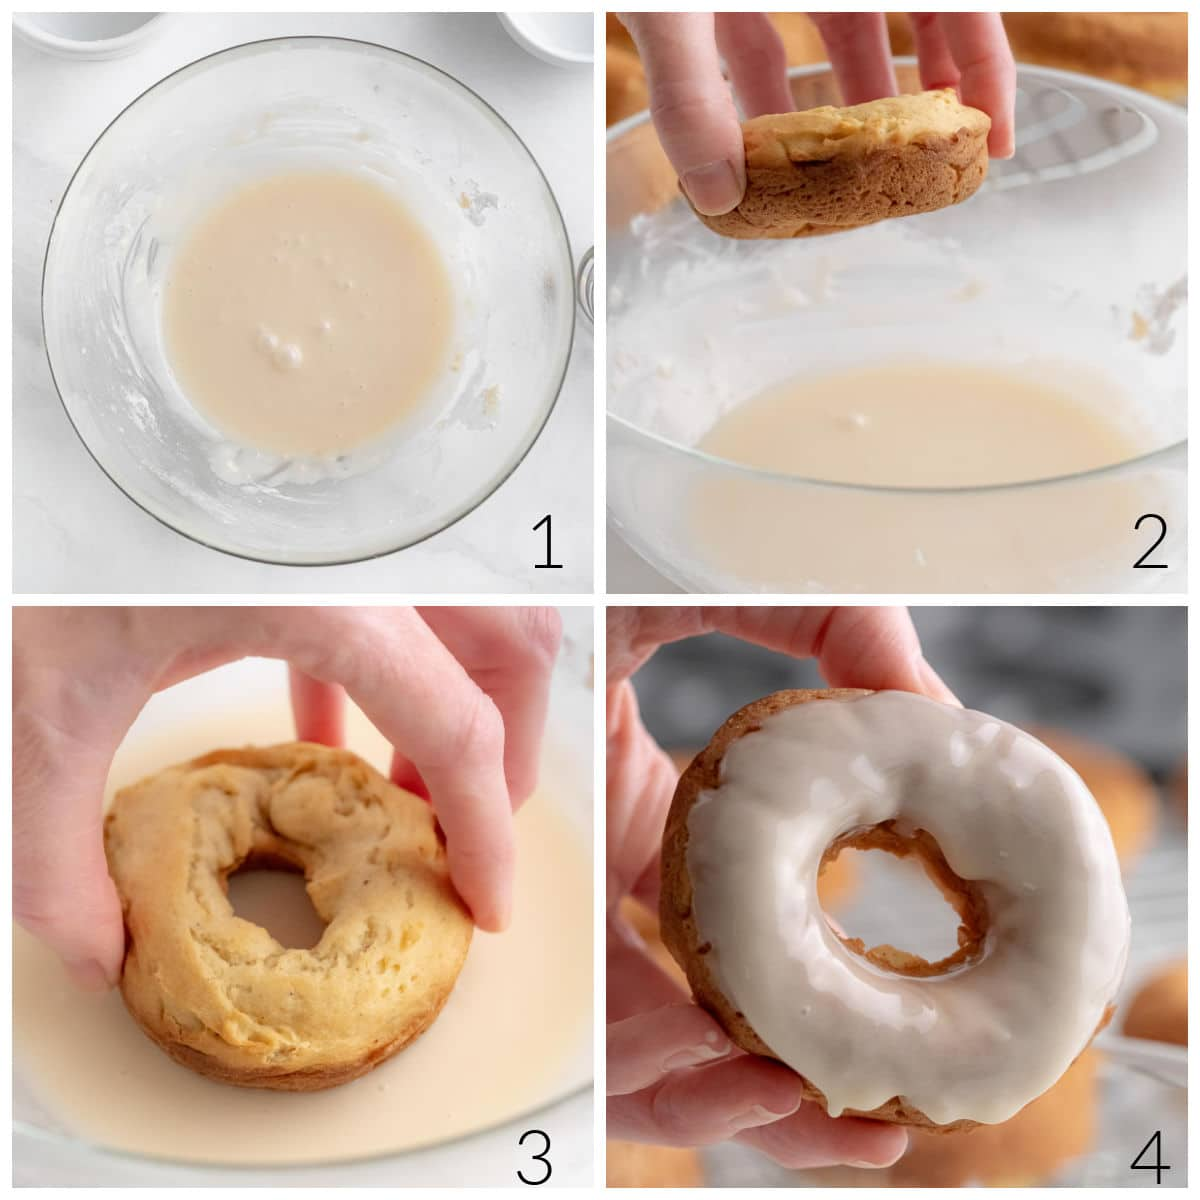 dipping a baked donuts into a sugar glaze in a bowl